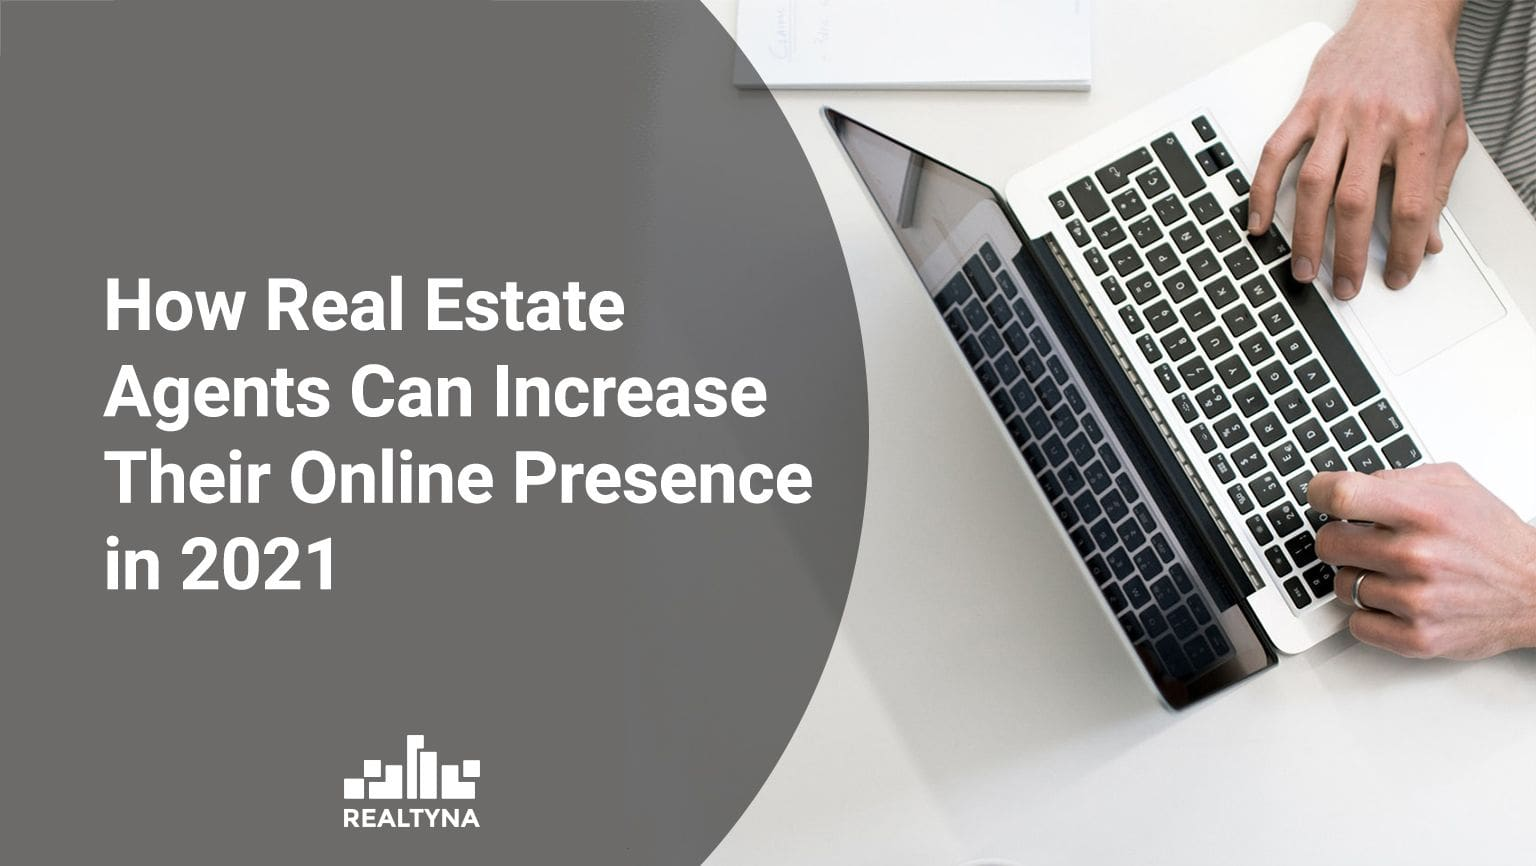 How Real Estate Agents Can Increase Their Online Presence in 2021